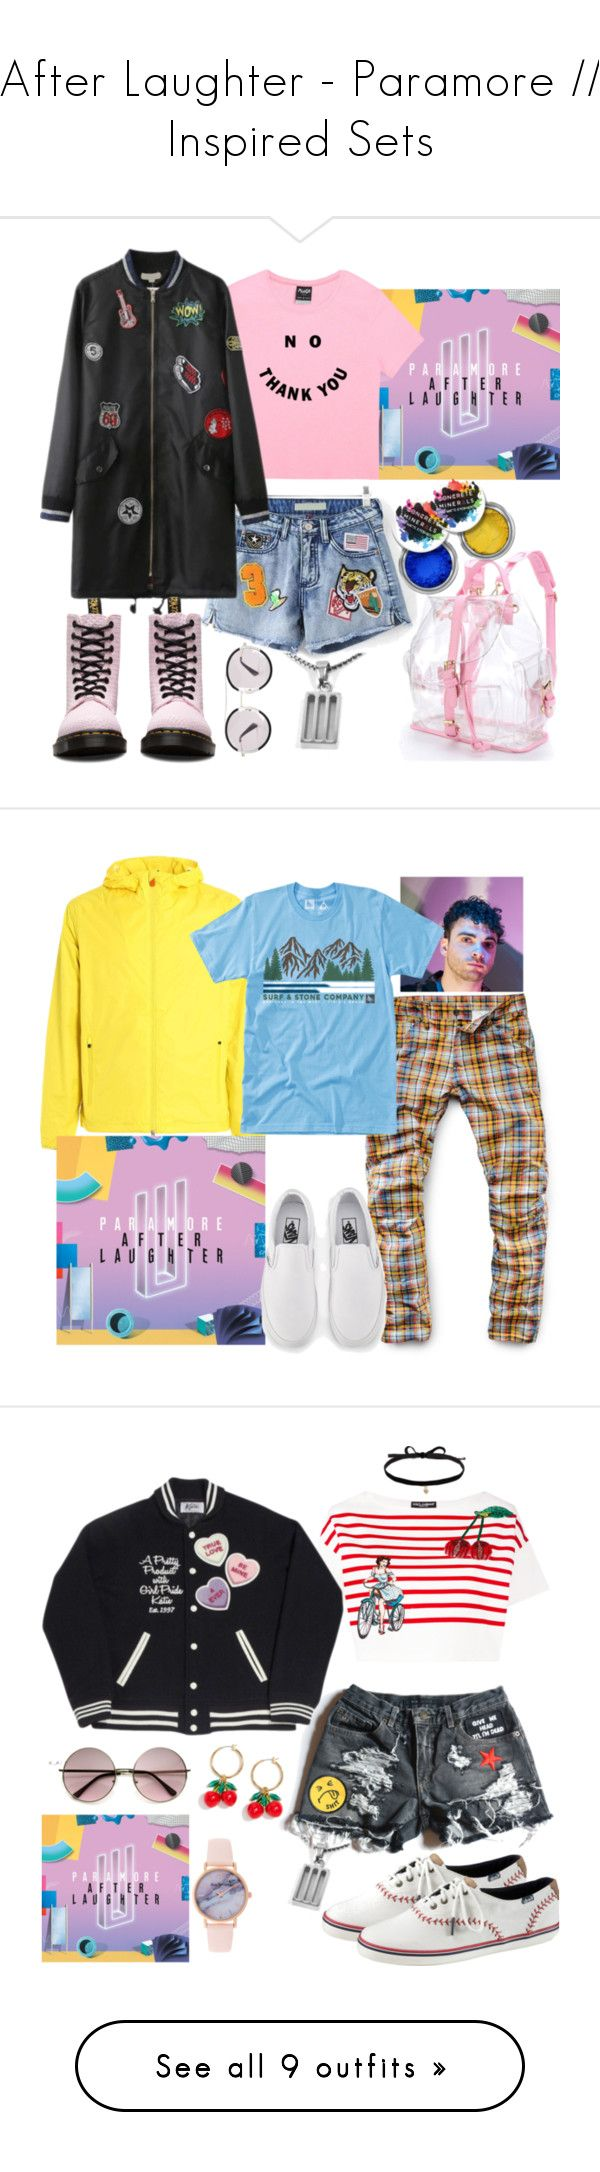 """""""After Laughter - Paramore // Inspired Sets"""" by paramore-24 ❤ liked on Polyvore featuring WithChic, Gucci, Dr. Martens, Save the Duck, G-Star Raw, HippyTree, Vans, men's fashion, menswear and J.Crew"""